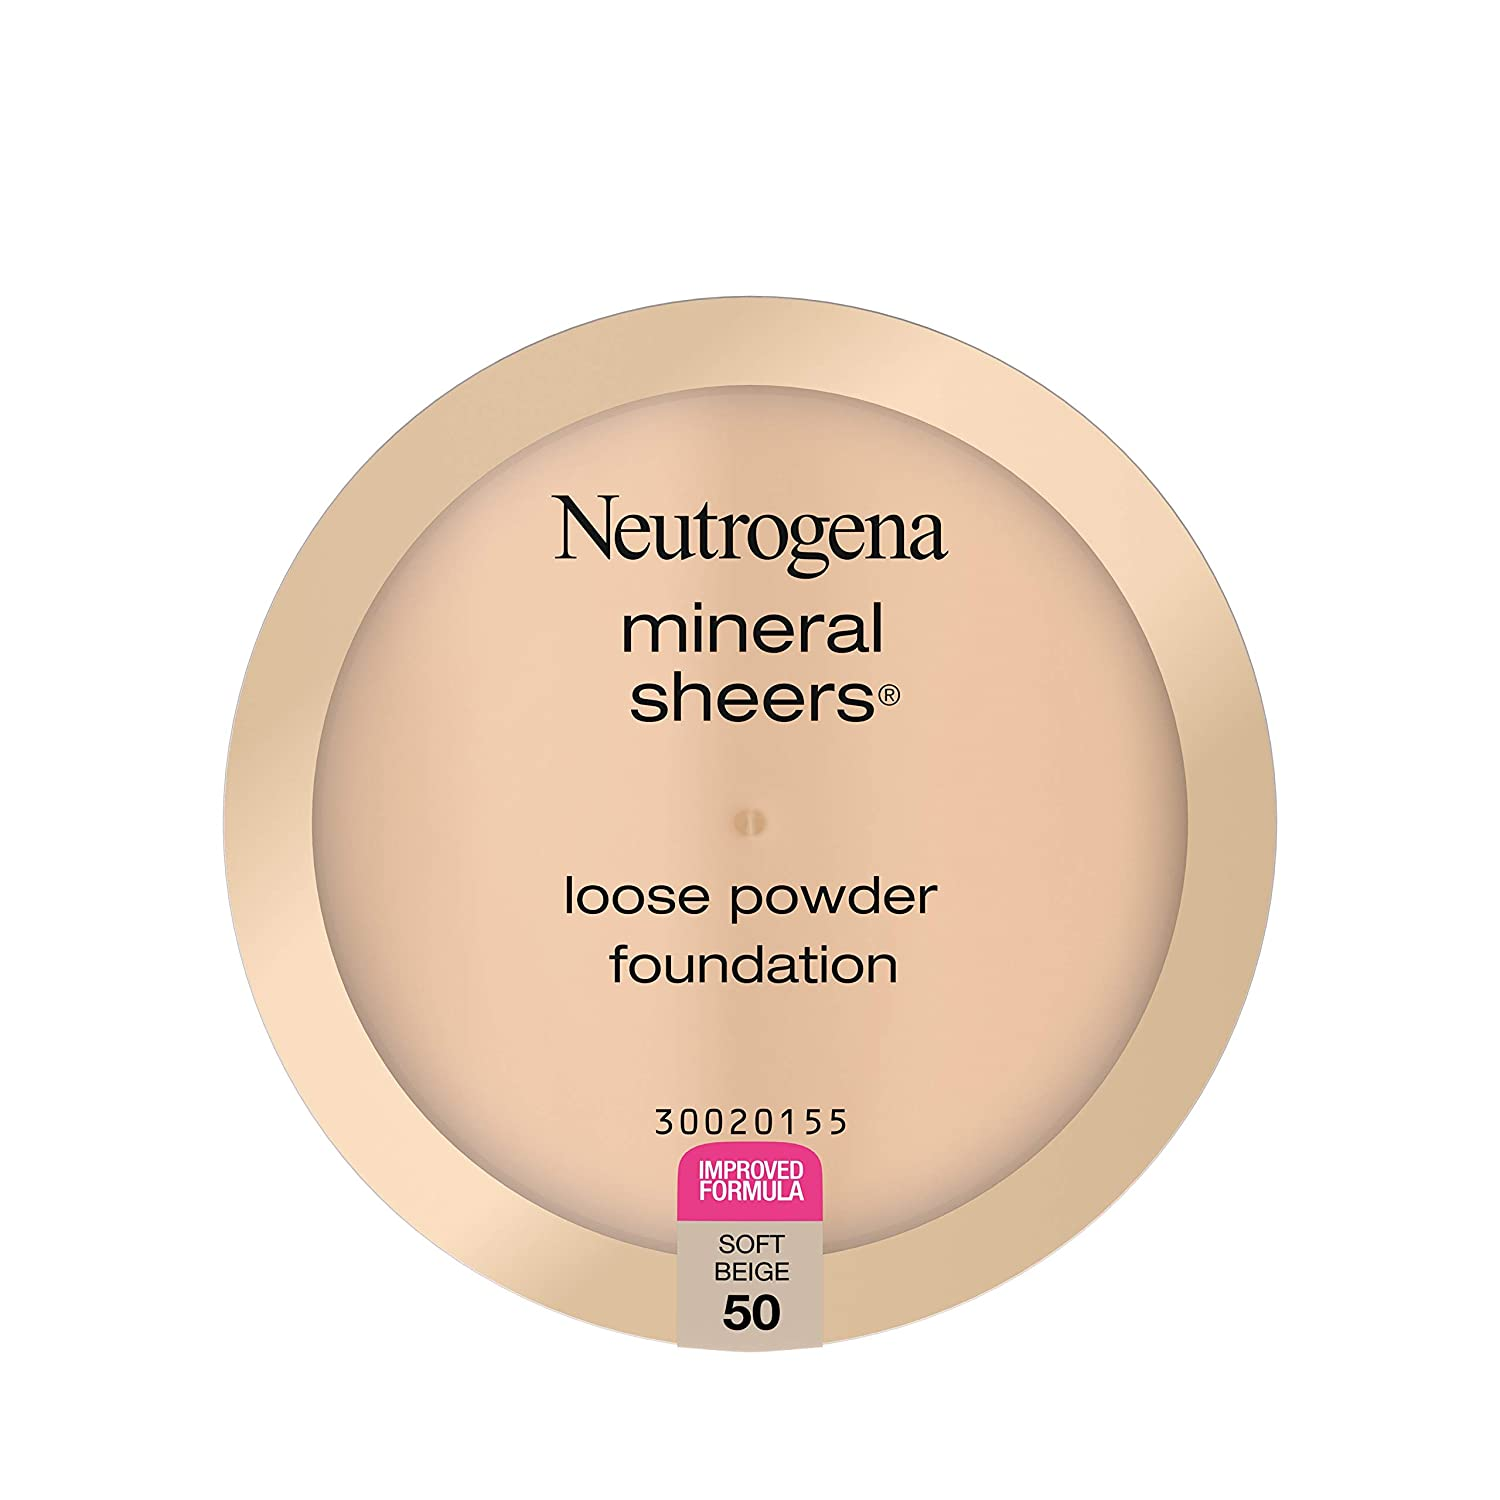 Neutrogena Mineral Sheers Lightweight Loose Powder Makeup Foundation with Vitamins A, C, & E, Sheer to Medium Buildable Coverage, Skin Tone Enhancer, Face Redness Reducer, Soft Beige 50, .19 oz